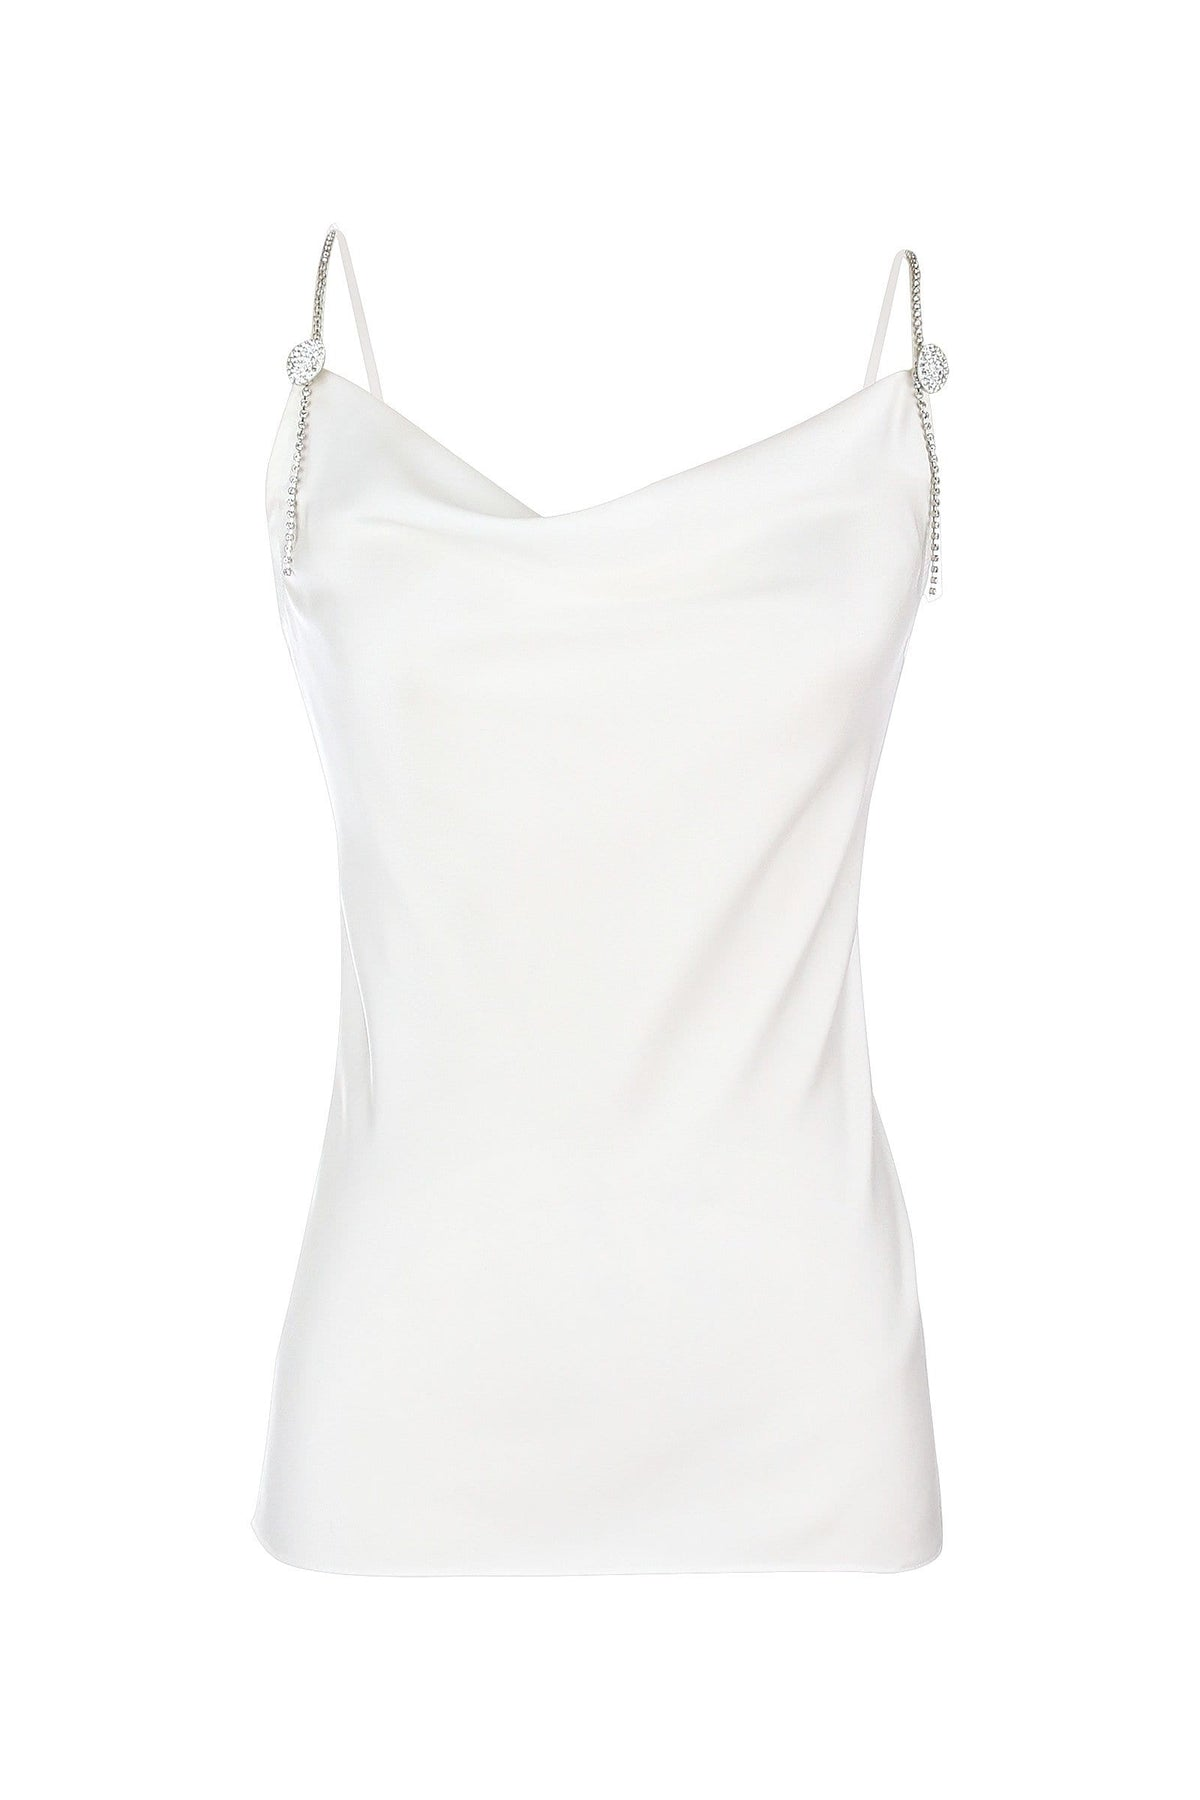 Dita White Star-Studded Top